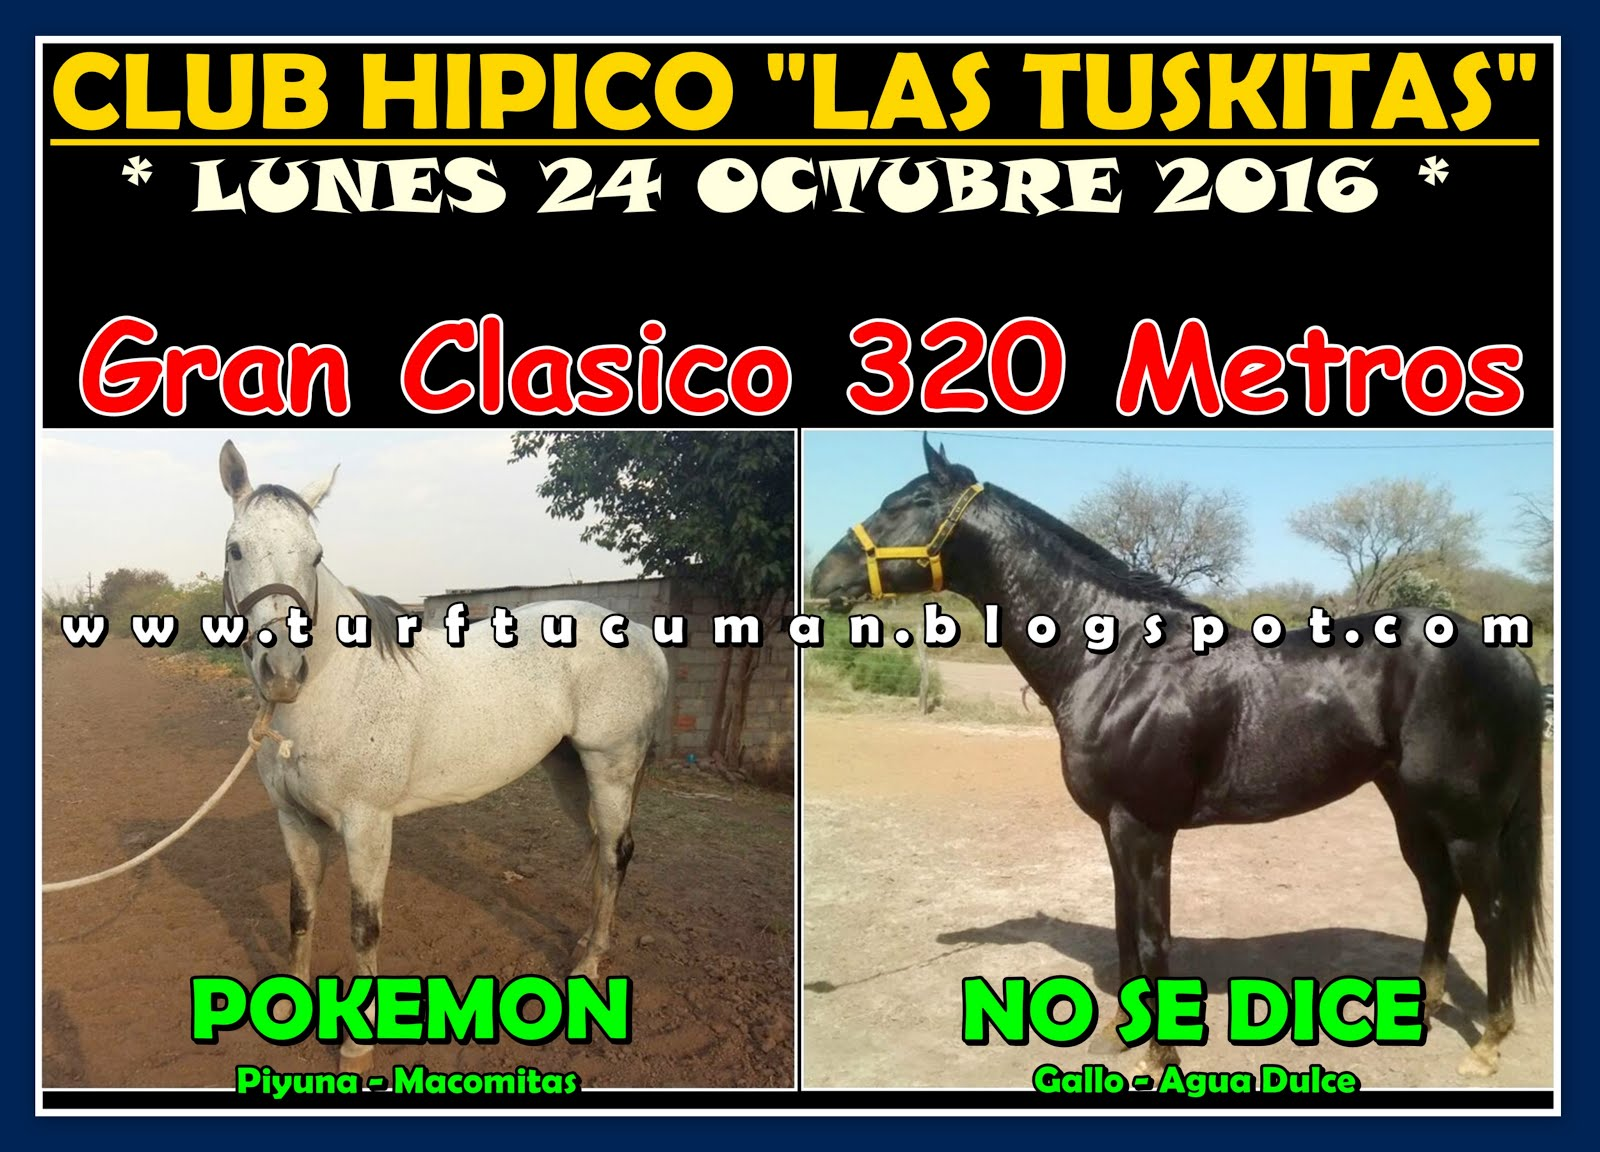 POKEMON VS NO SE DICE